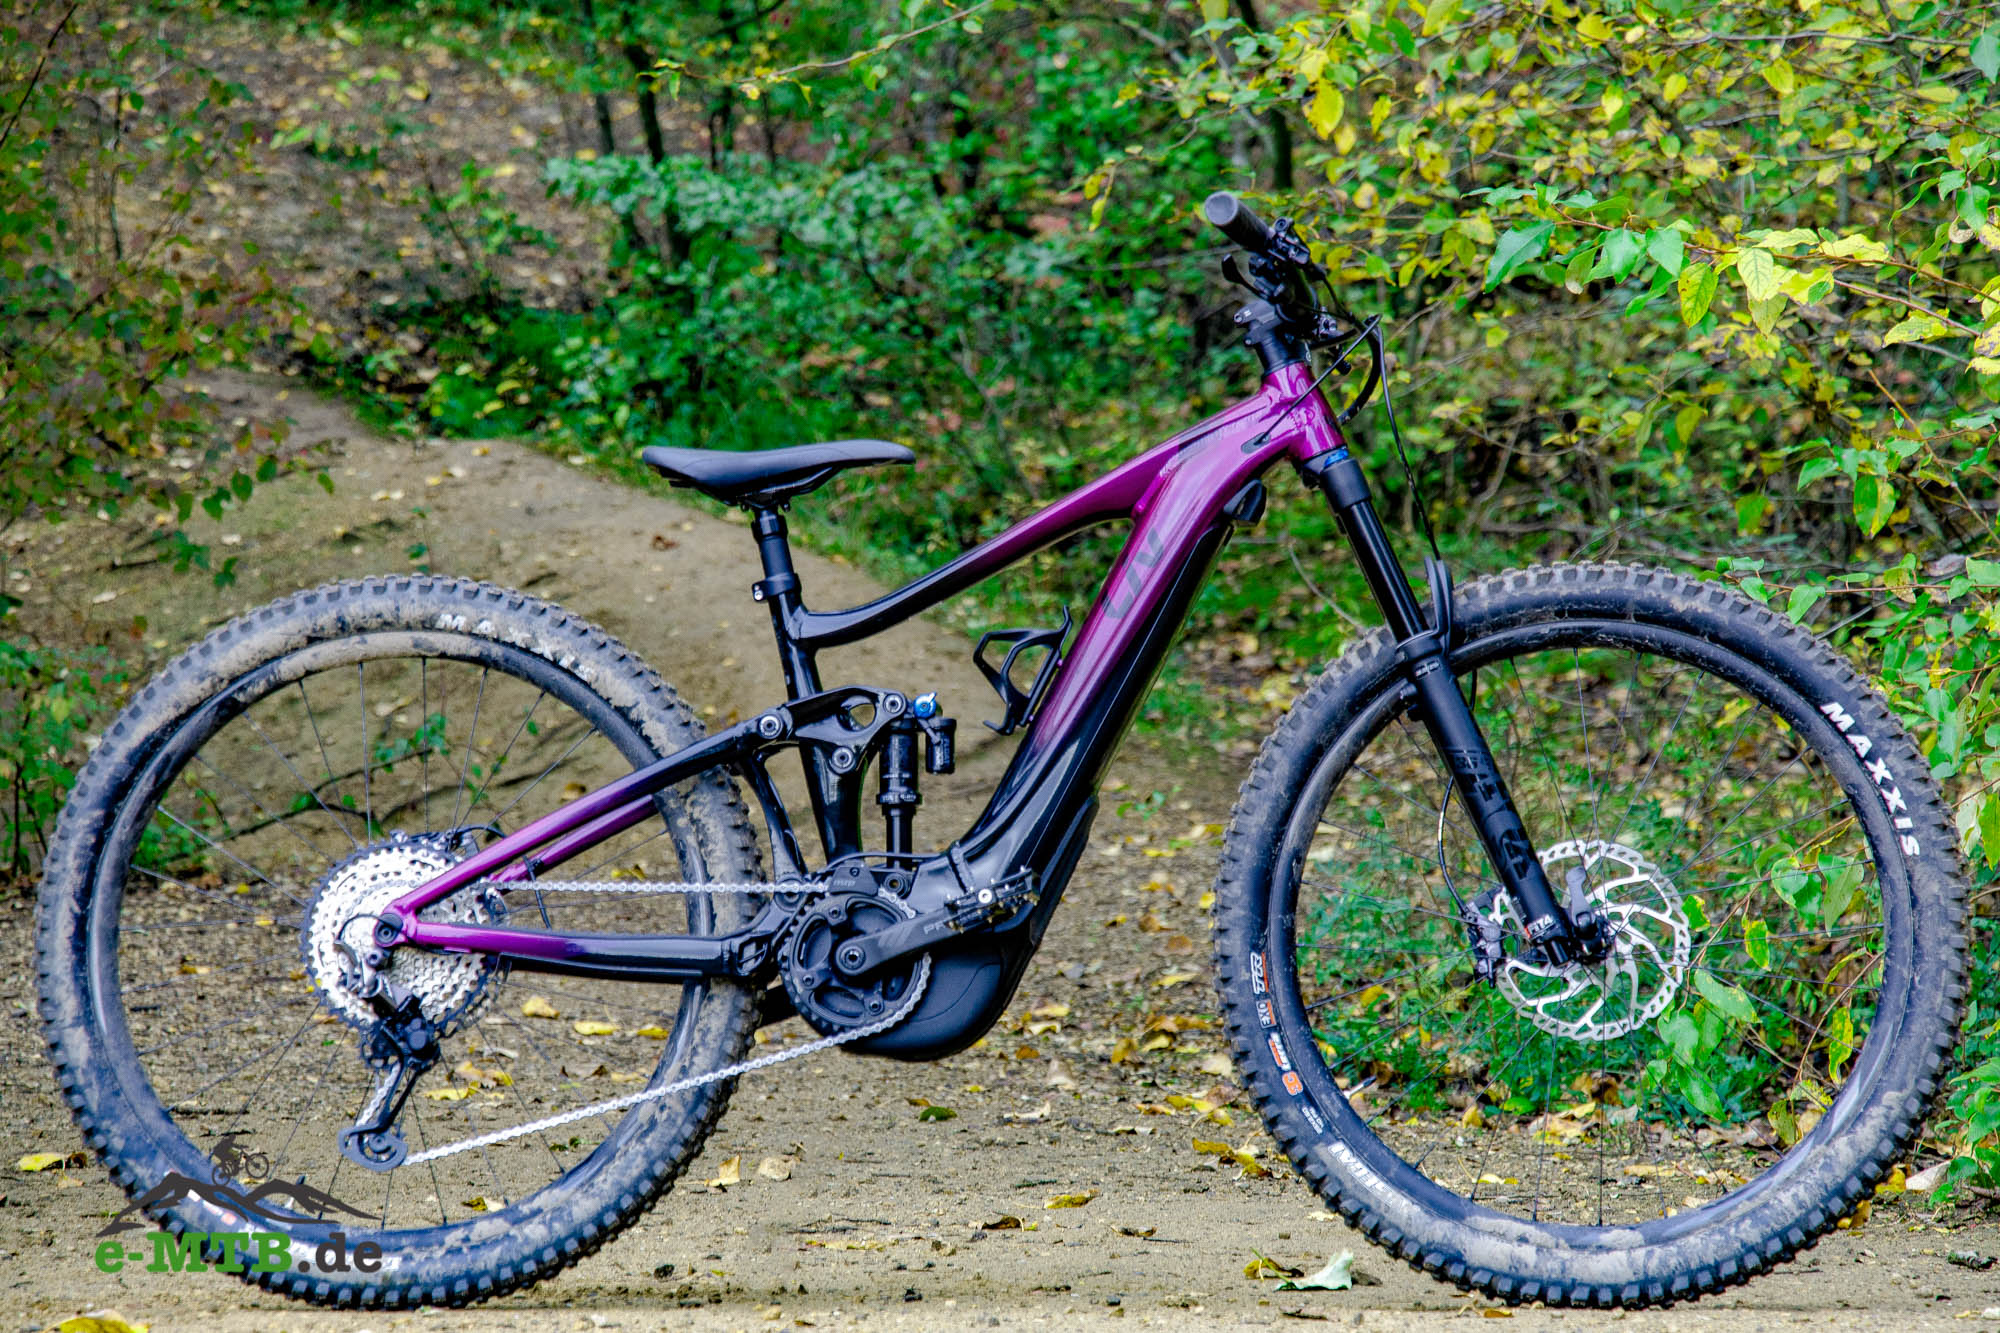 Intrigue X E+: Trail e-MTB für Frauen!